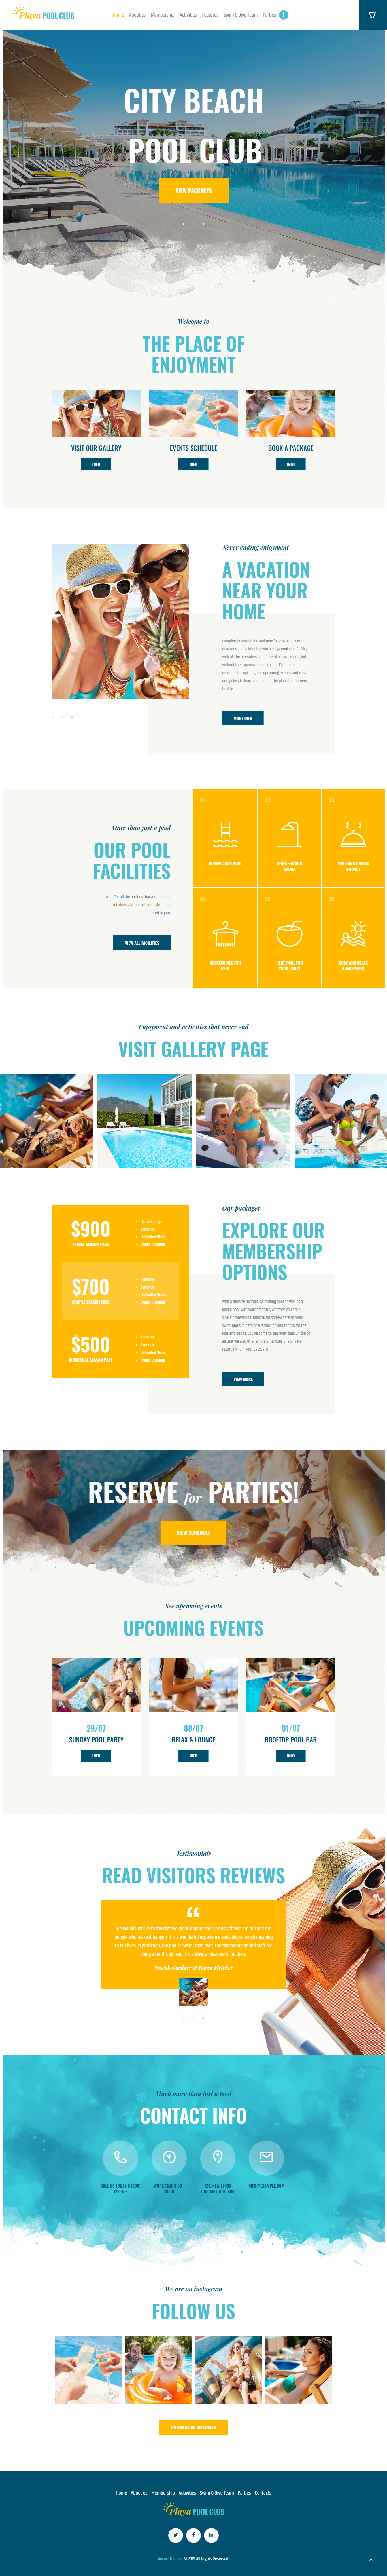 Playa - Best Premium Outdoor Activities WordPress Theme